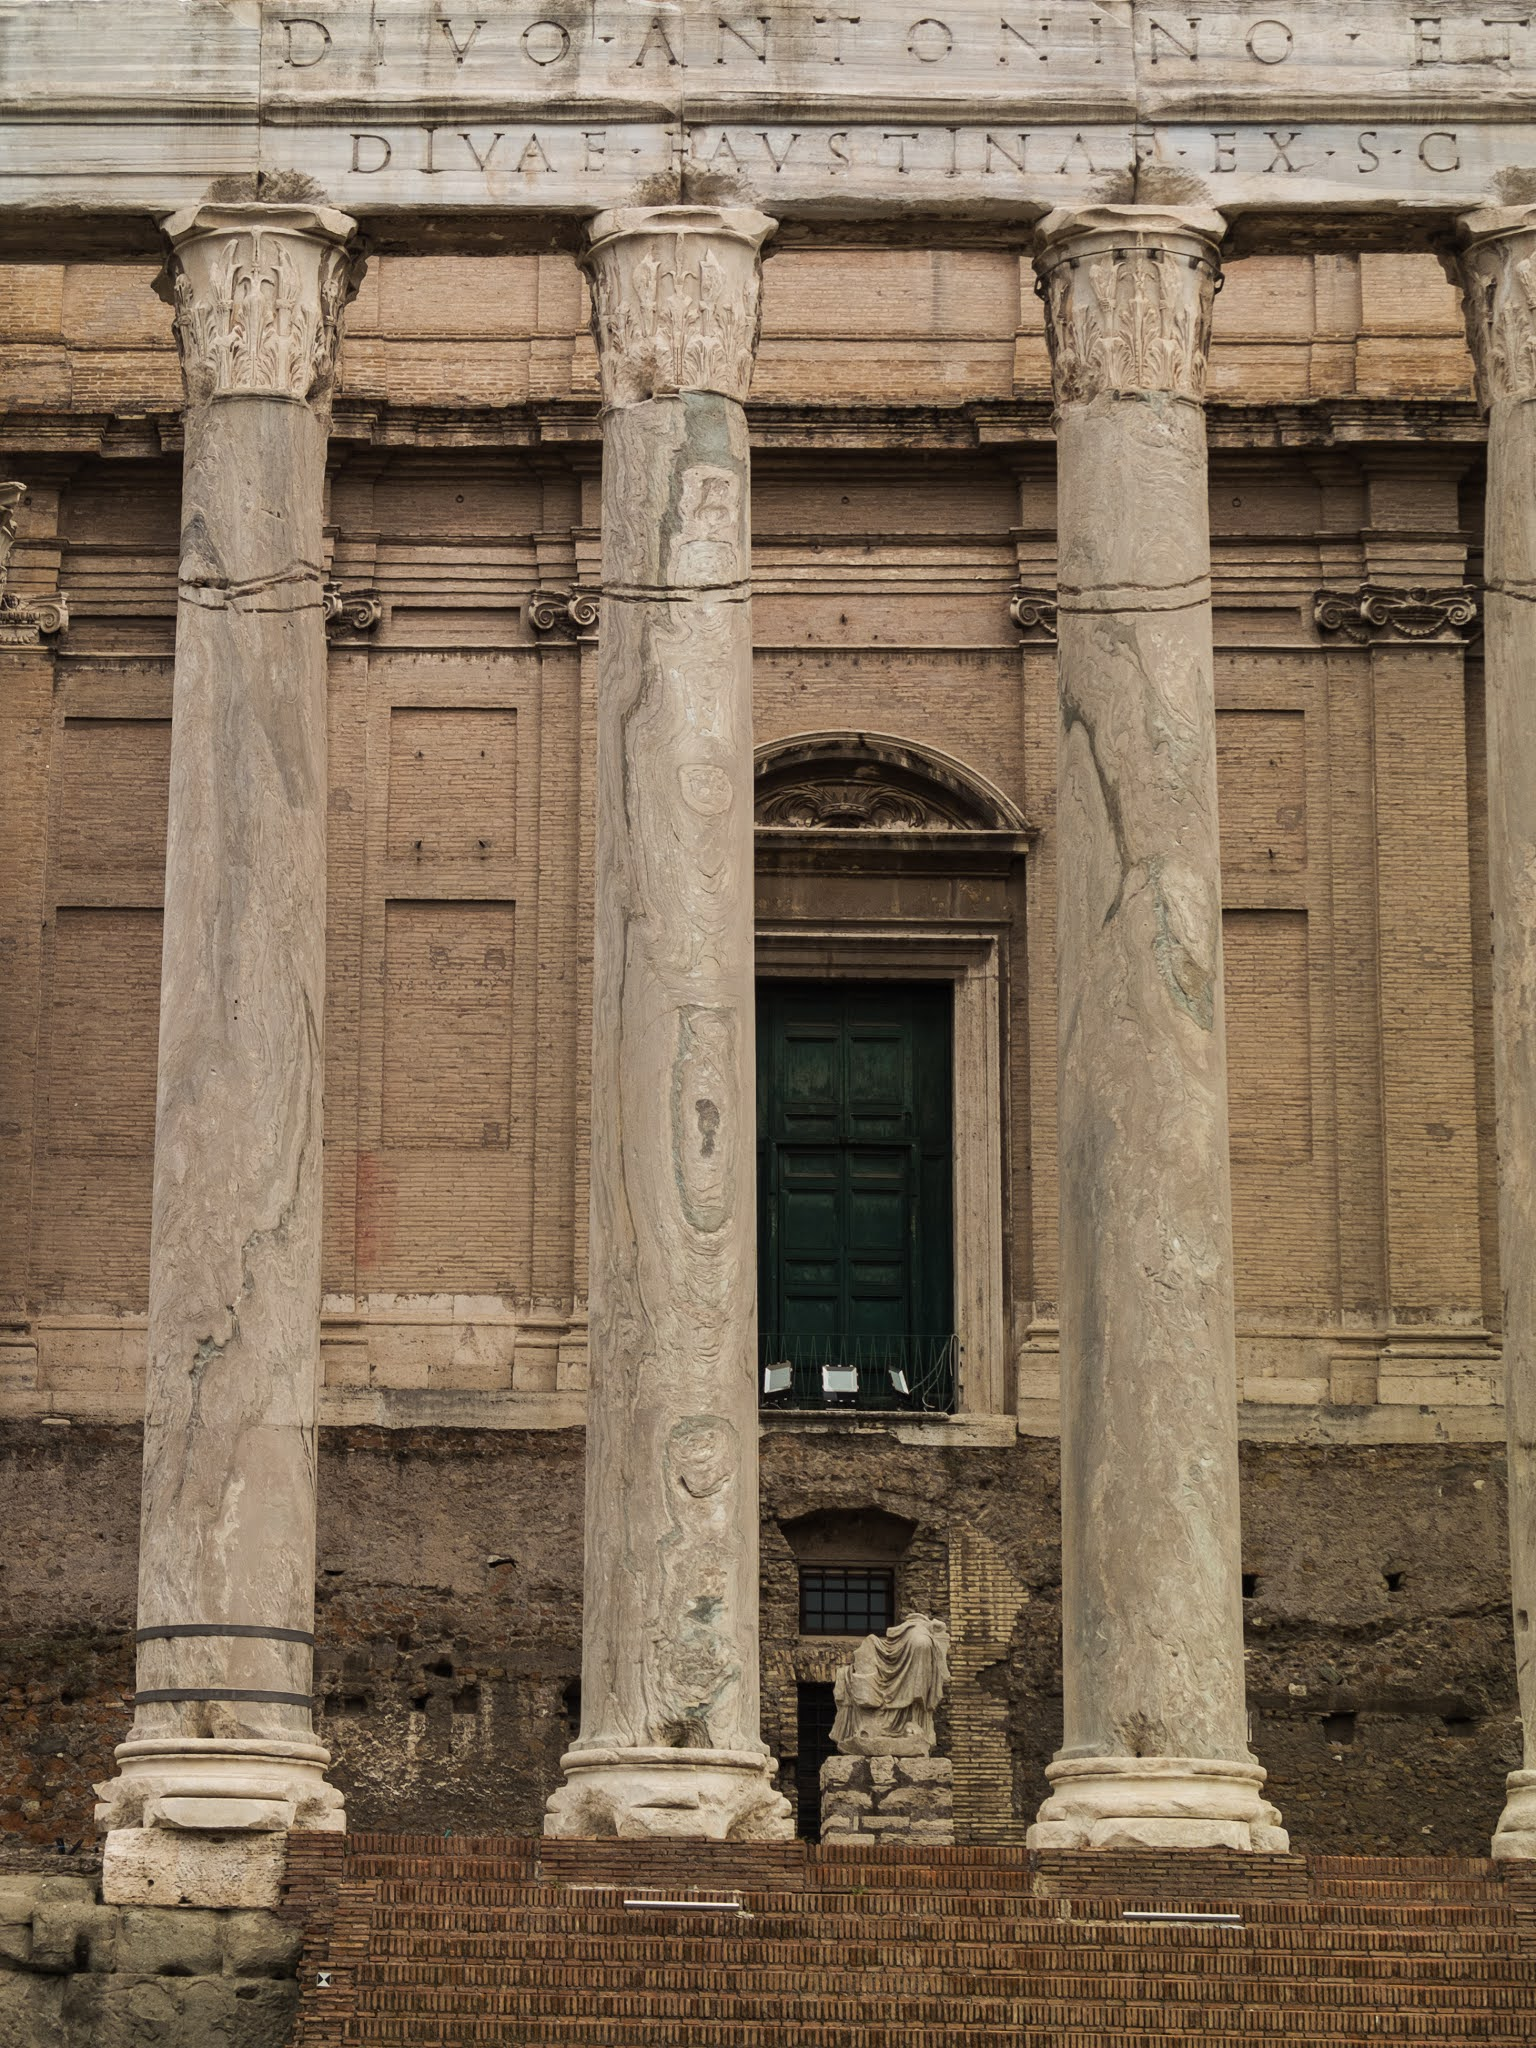 Red brick steps, columns and green door of the Temple of Antoninus and Faustina in the Roman Forum.